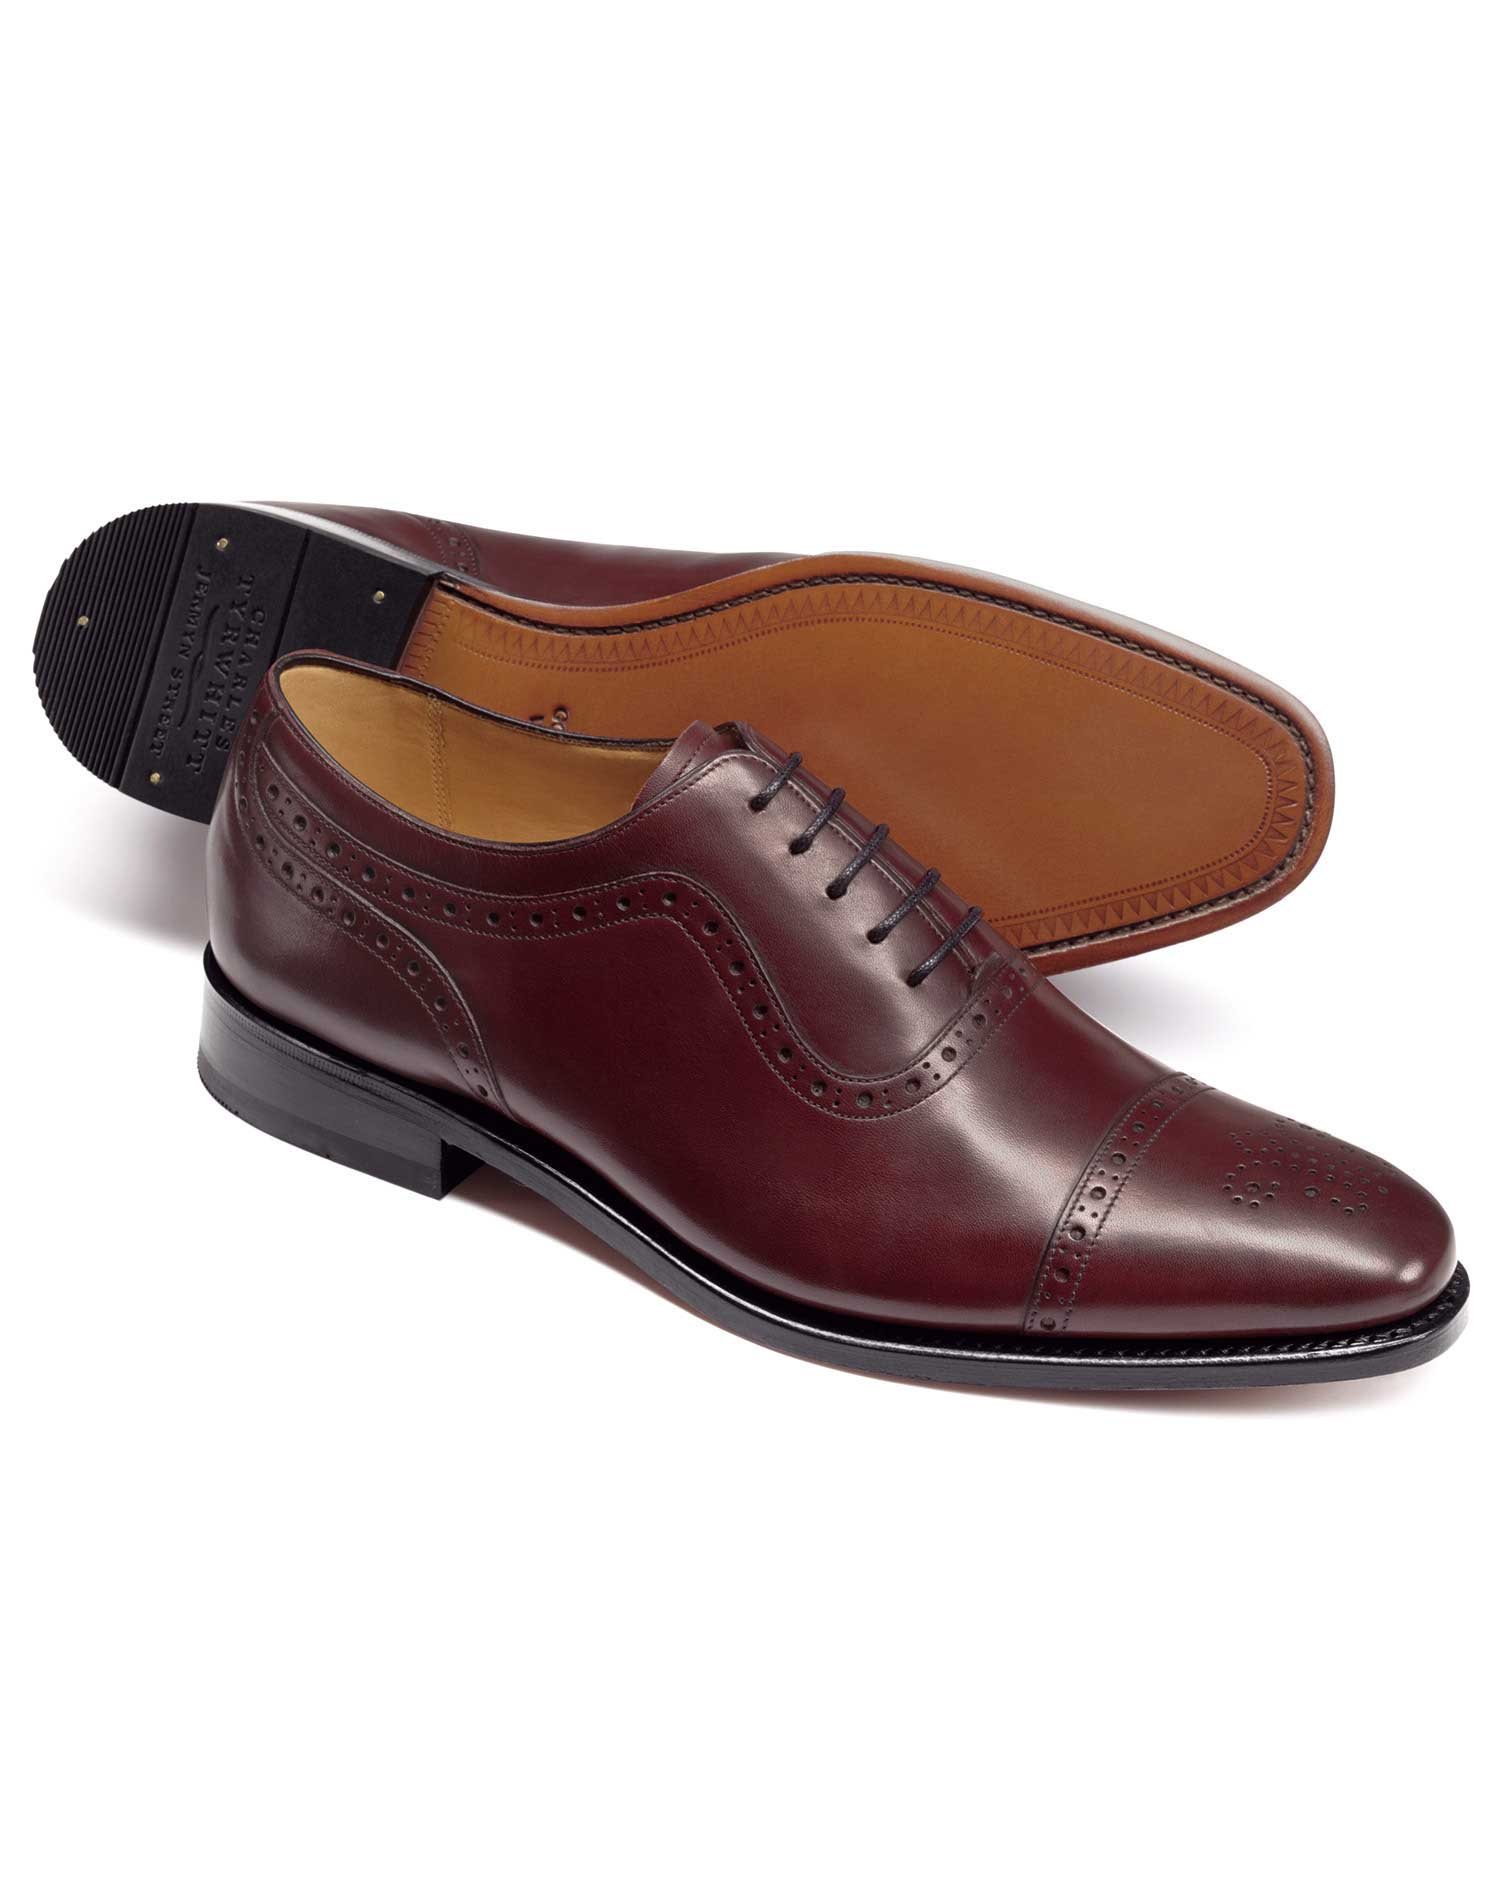 Burgundy Goodyear Welted Oxford Brogue Shoes Size 10 R by Charles Tyrwhitt